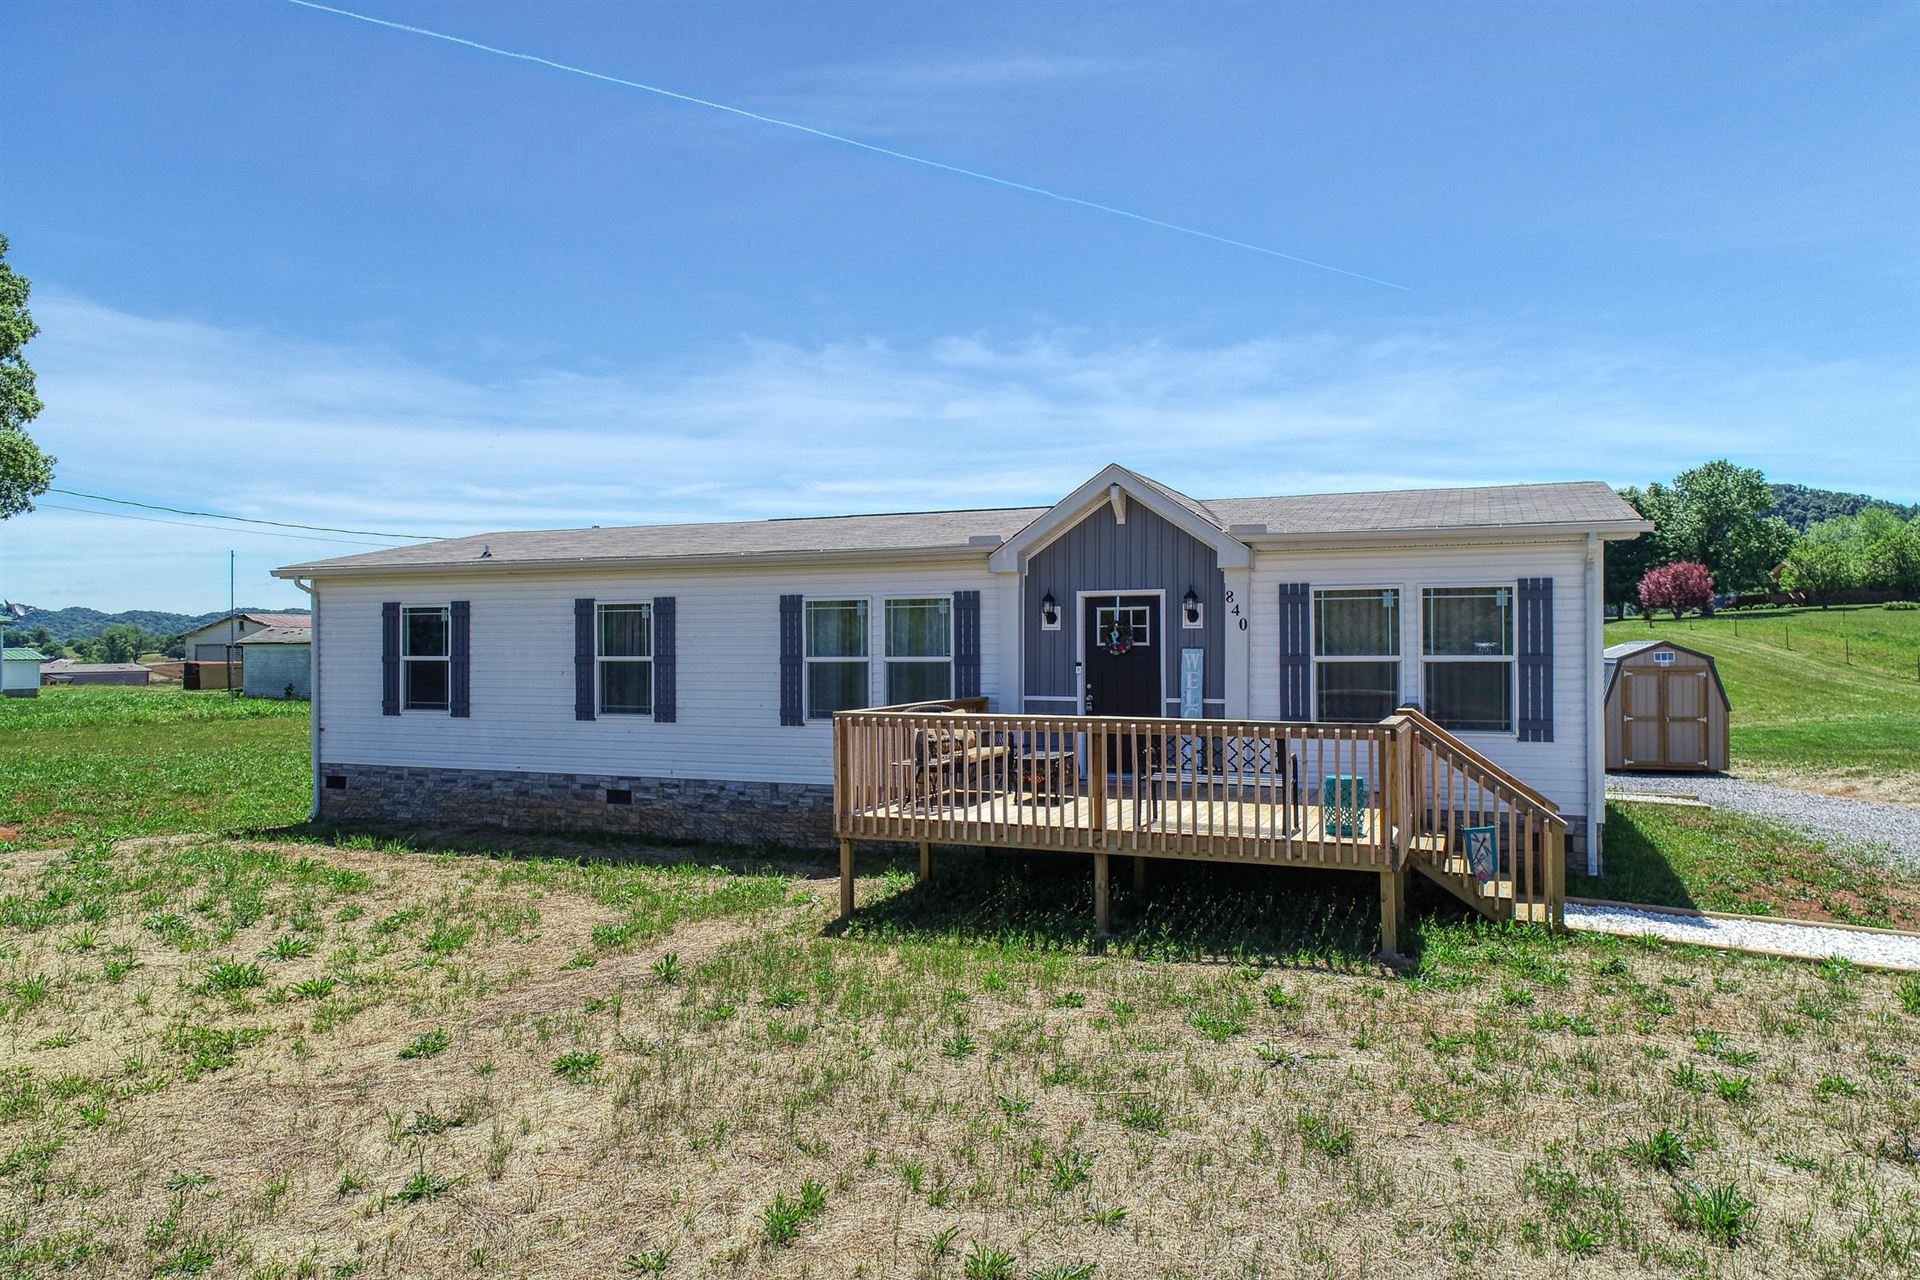 Photo of 840 Hickory Cove Road, Rogersville, TN 37857 (MLS # 9923690)